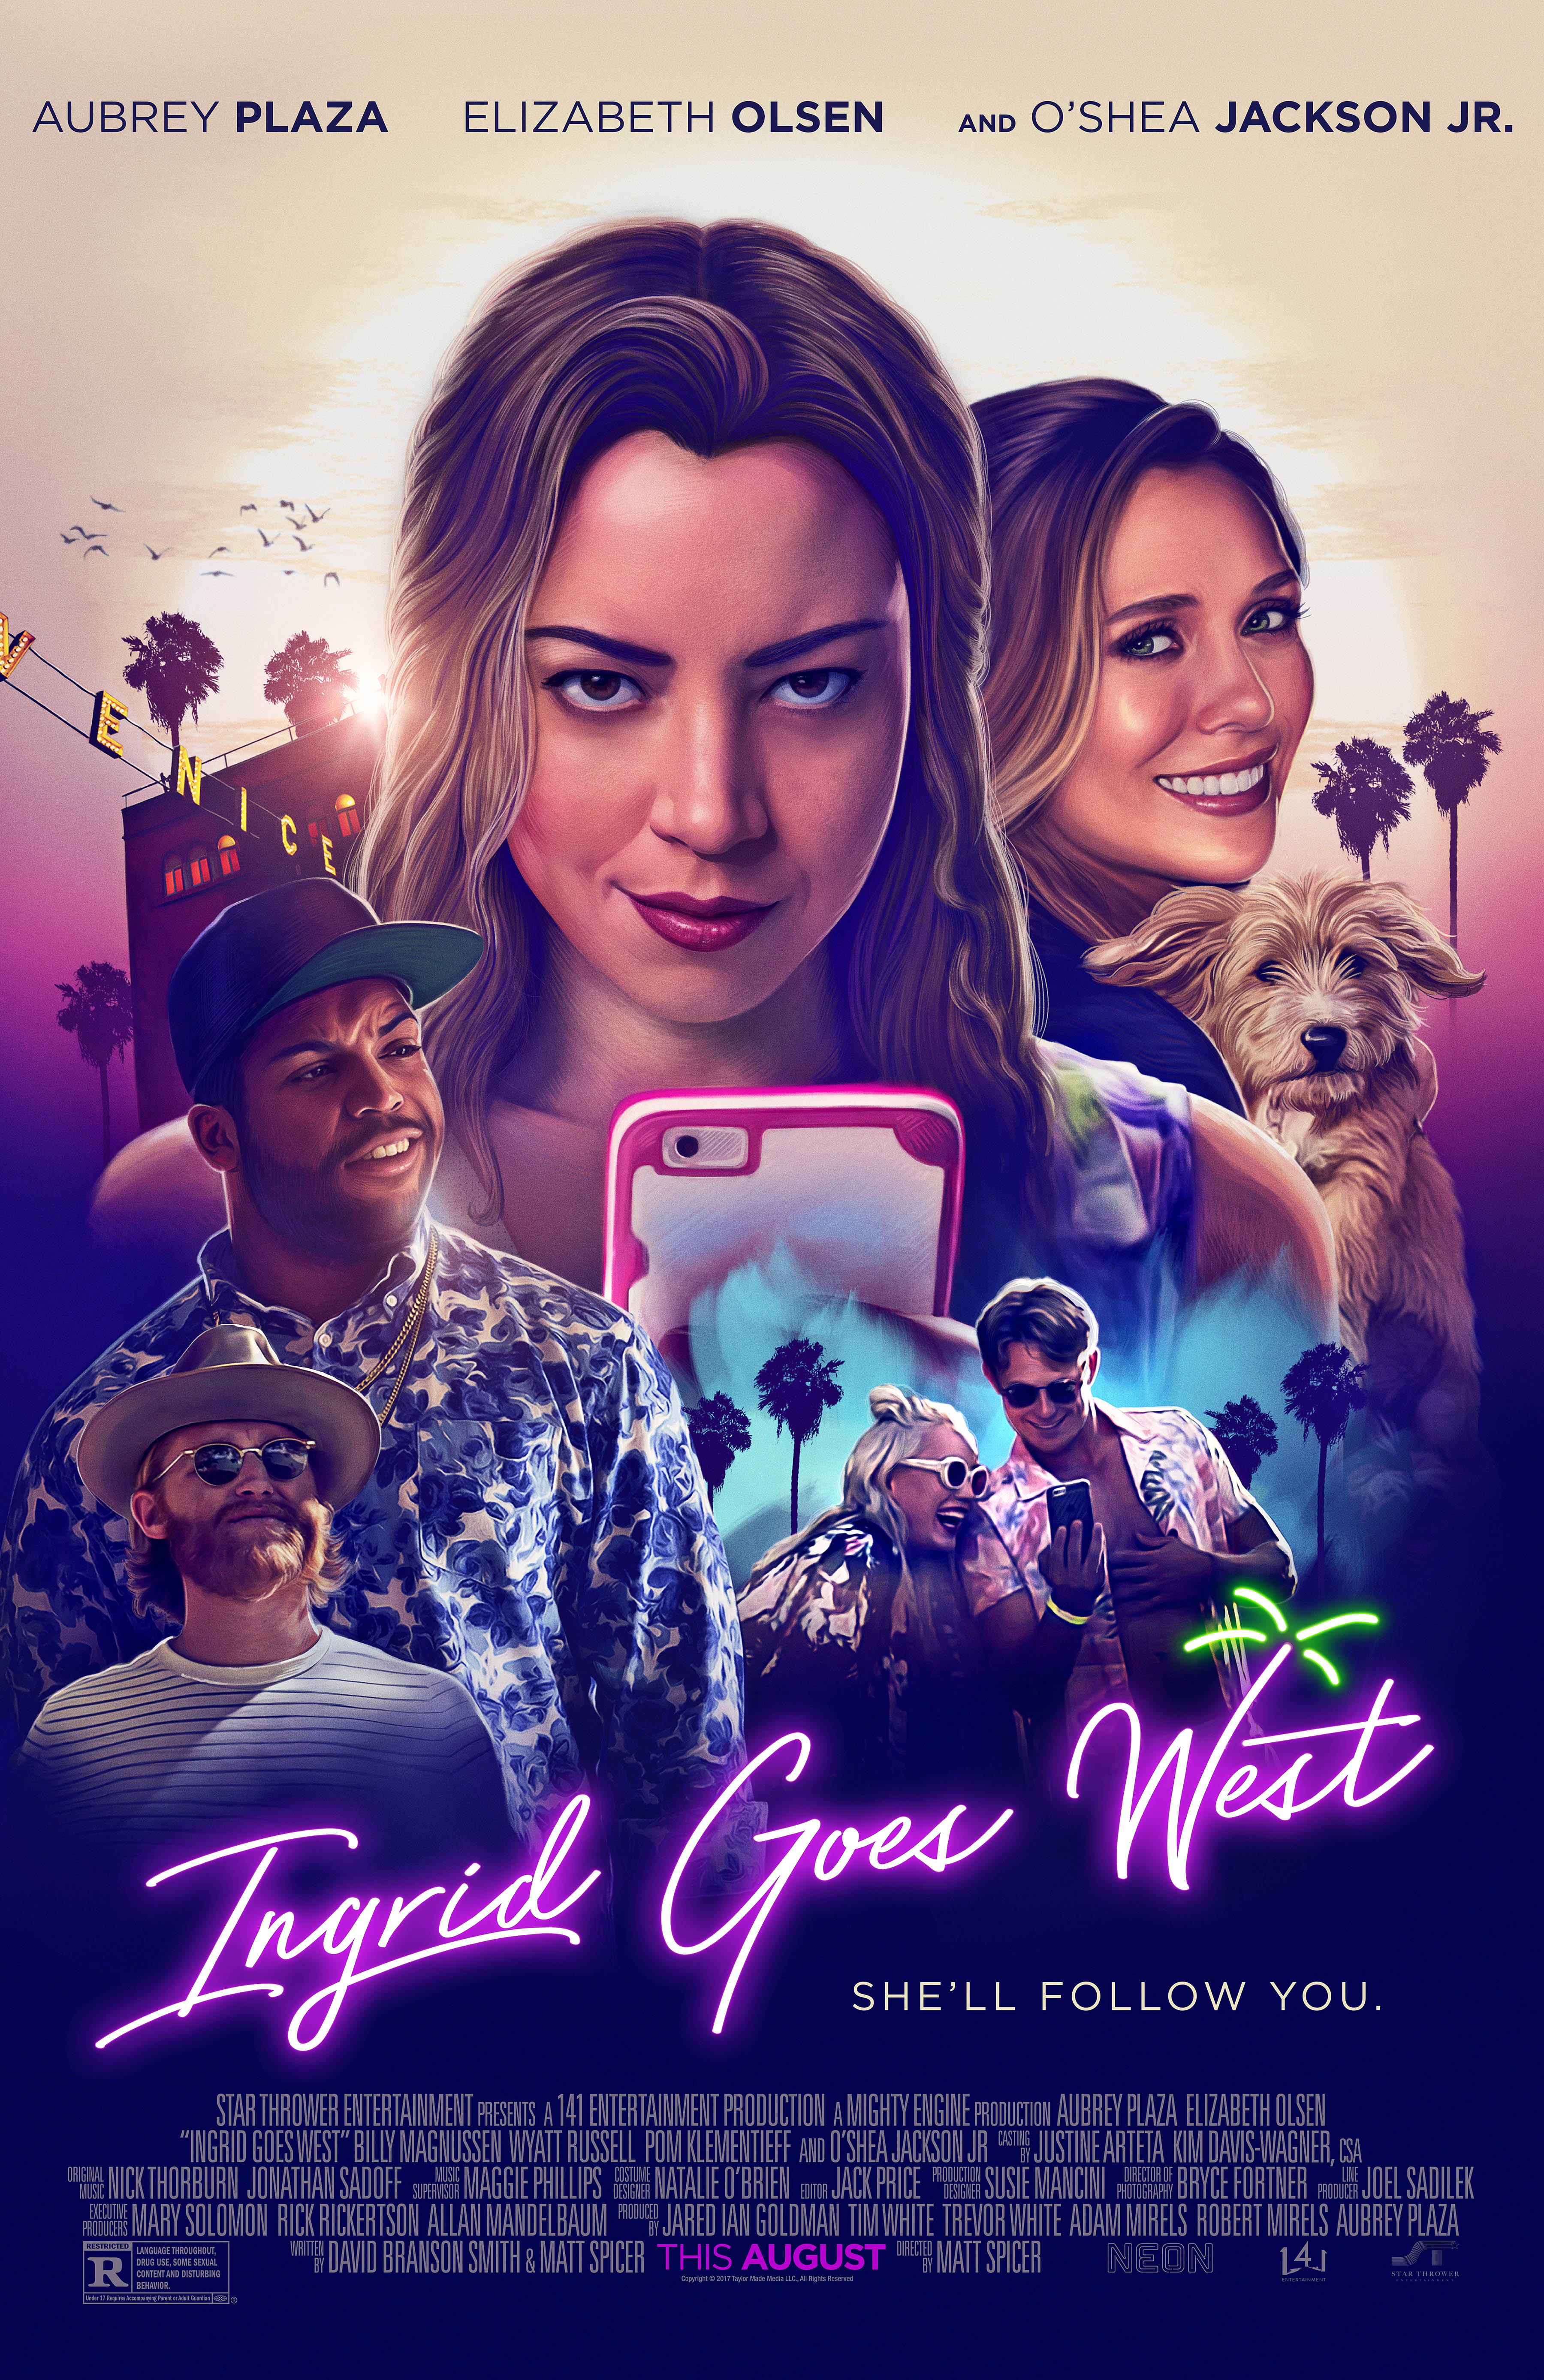 Win Tickets to See INGRID GOES WEST